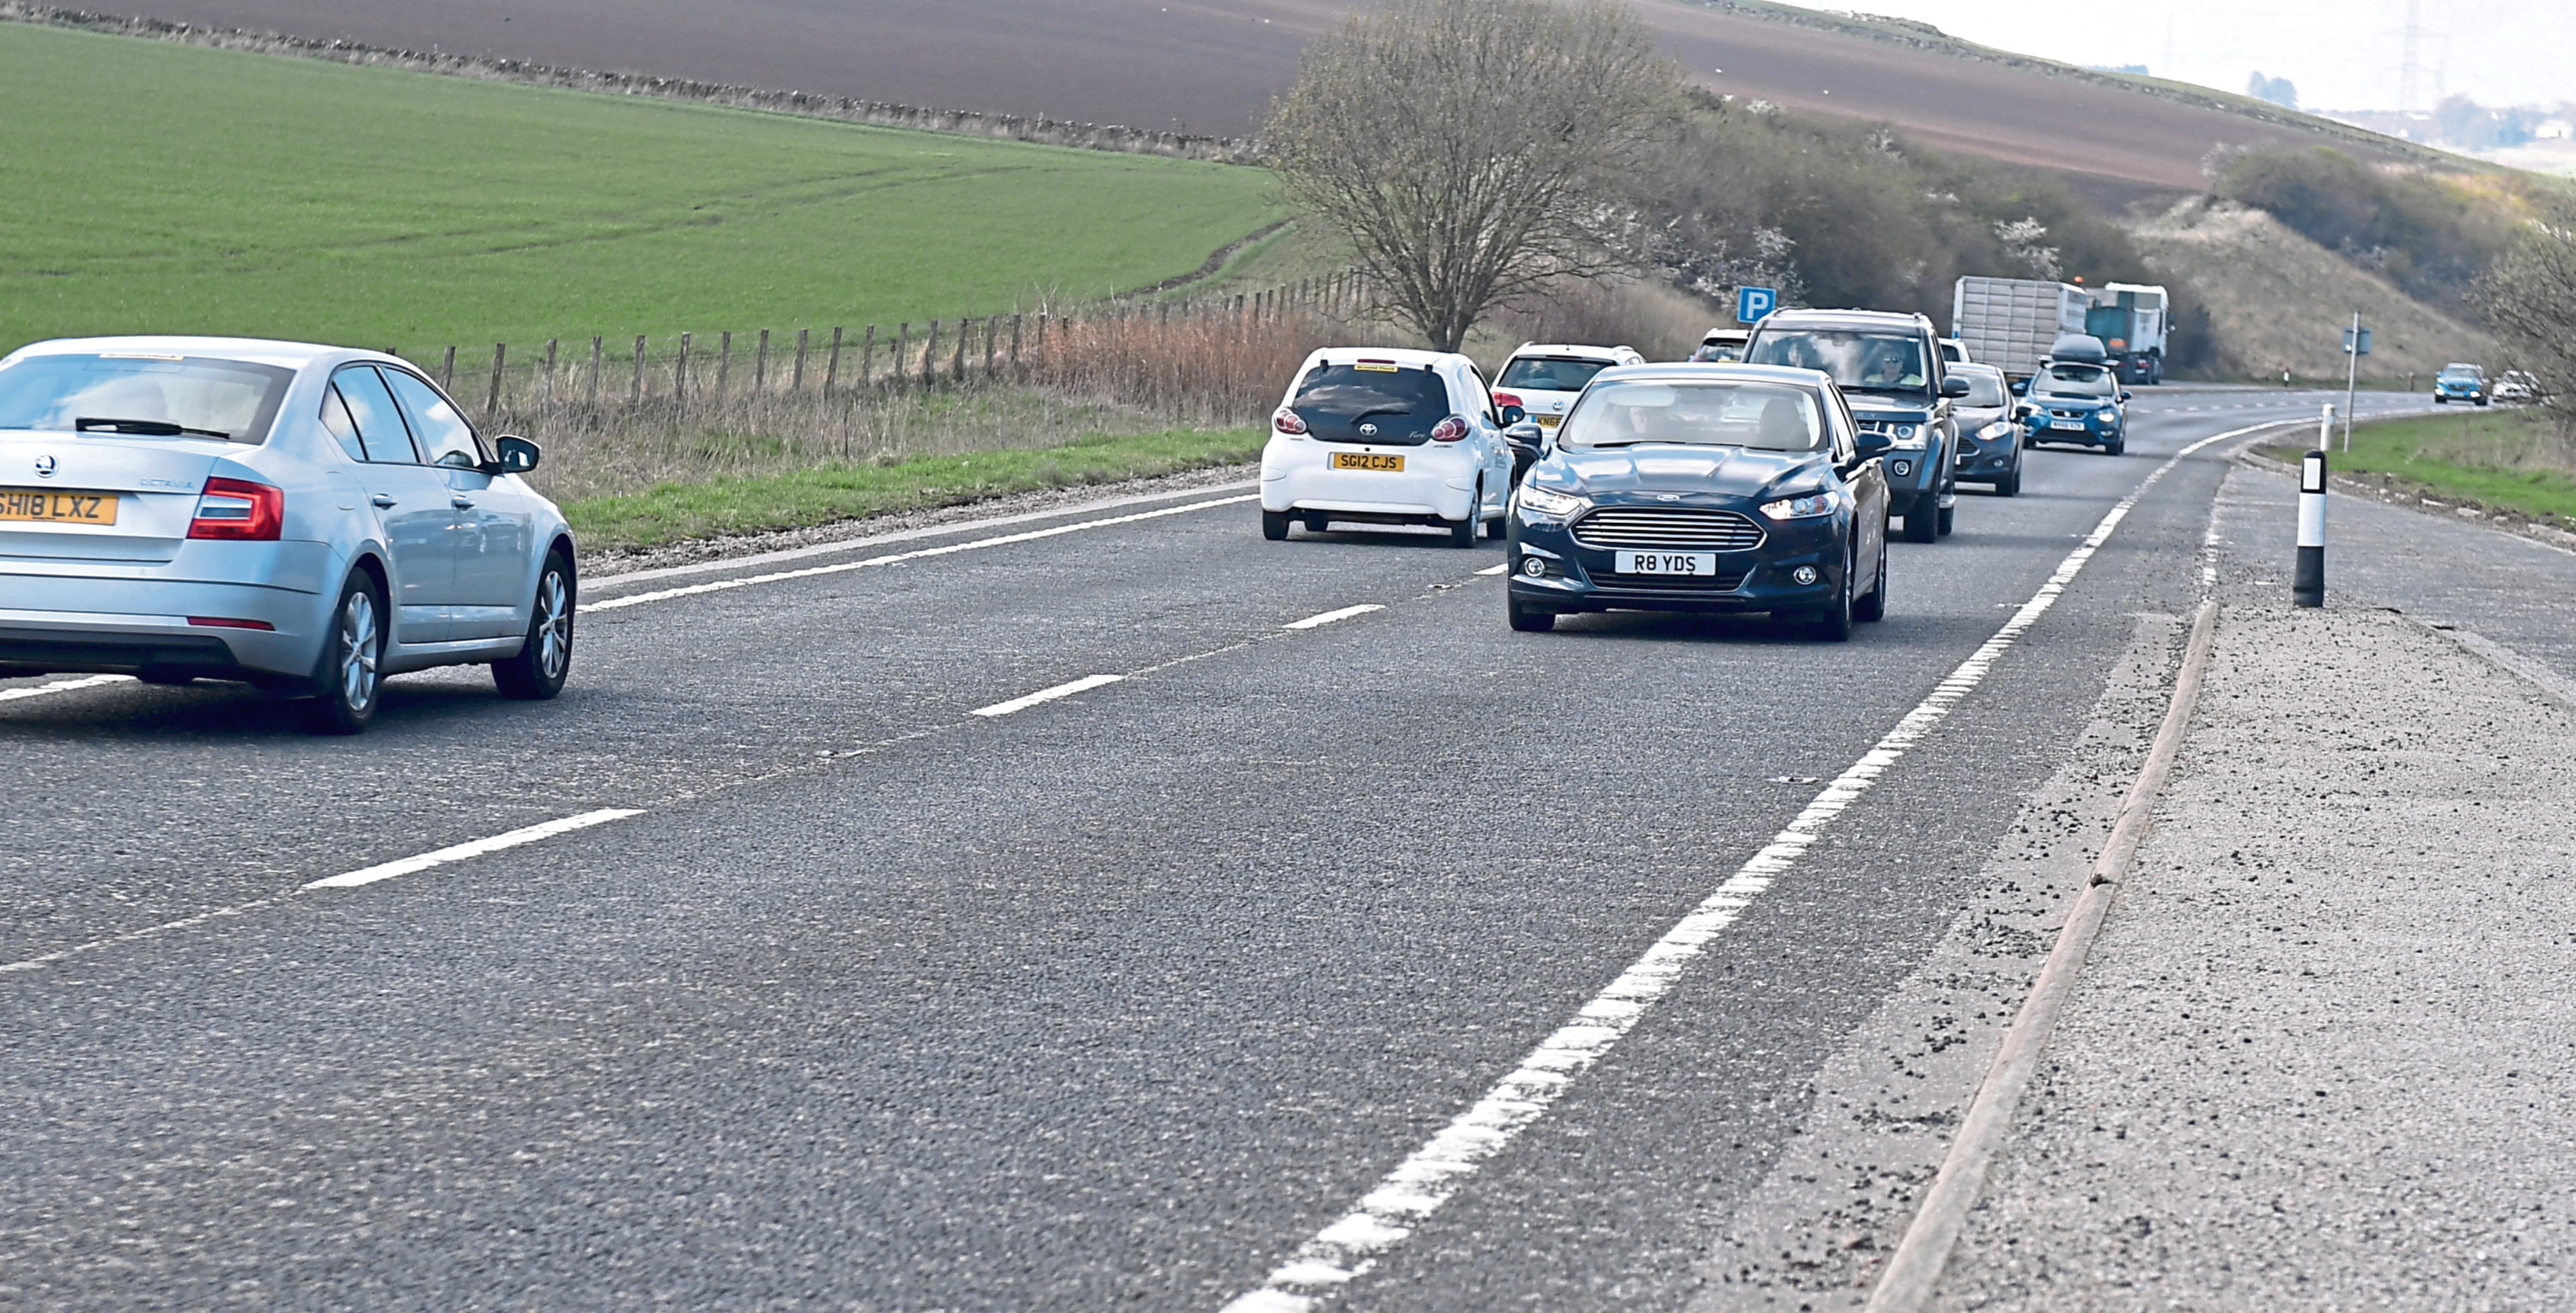 The A96 will not be dualled along its existing route